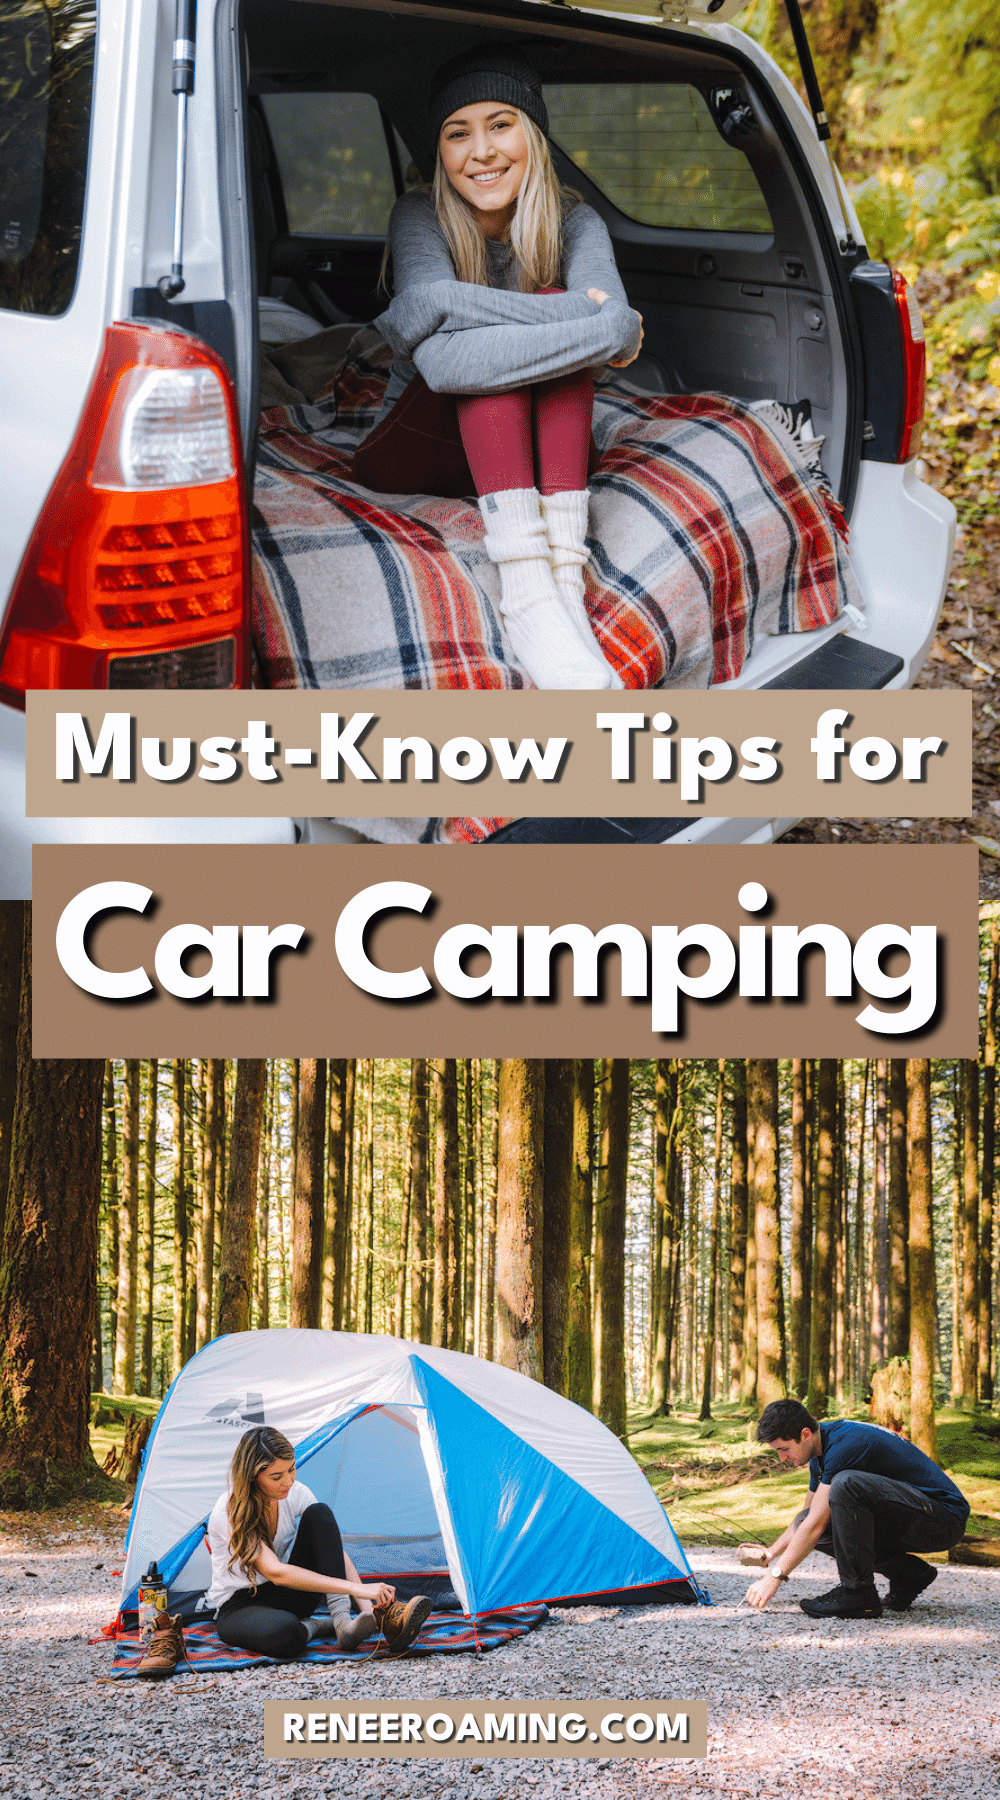 Car Camping Basics: How To Plan Your First Car Camping Trip